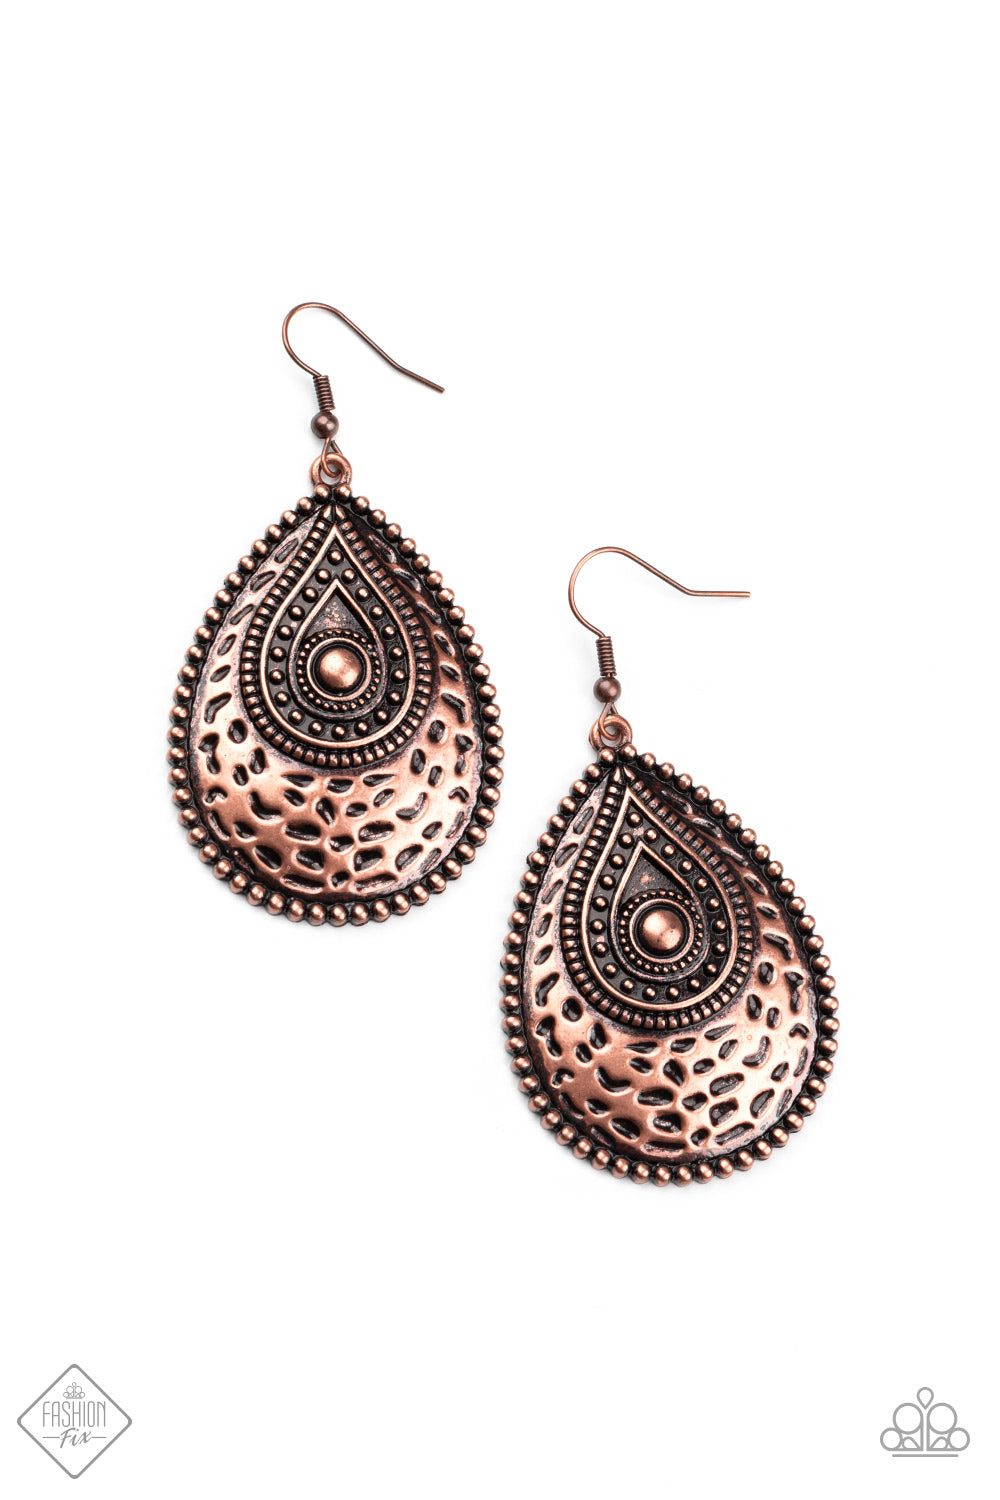 Paparazzi Earrings ~ Rural Muse - Fashion Fix Nov 2020 - Copper